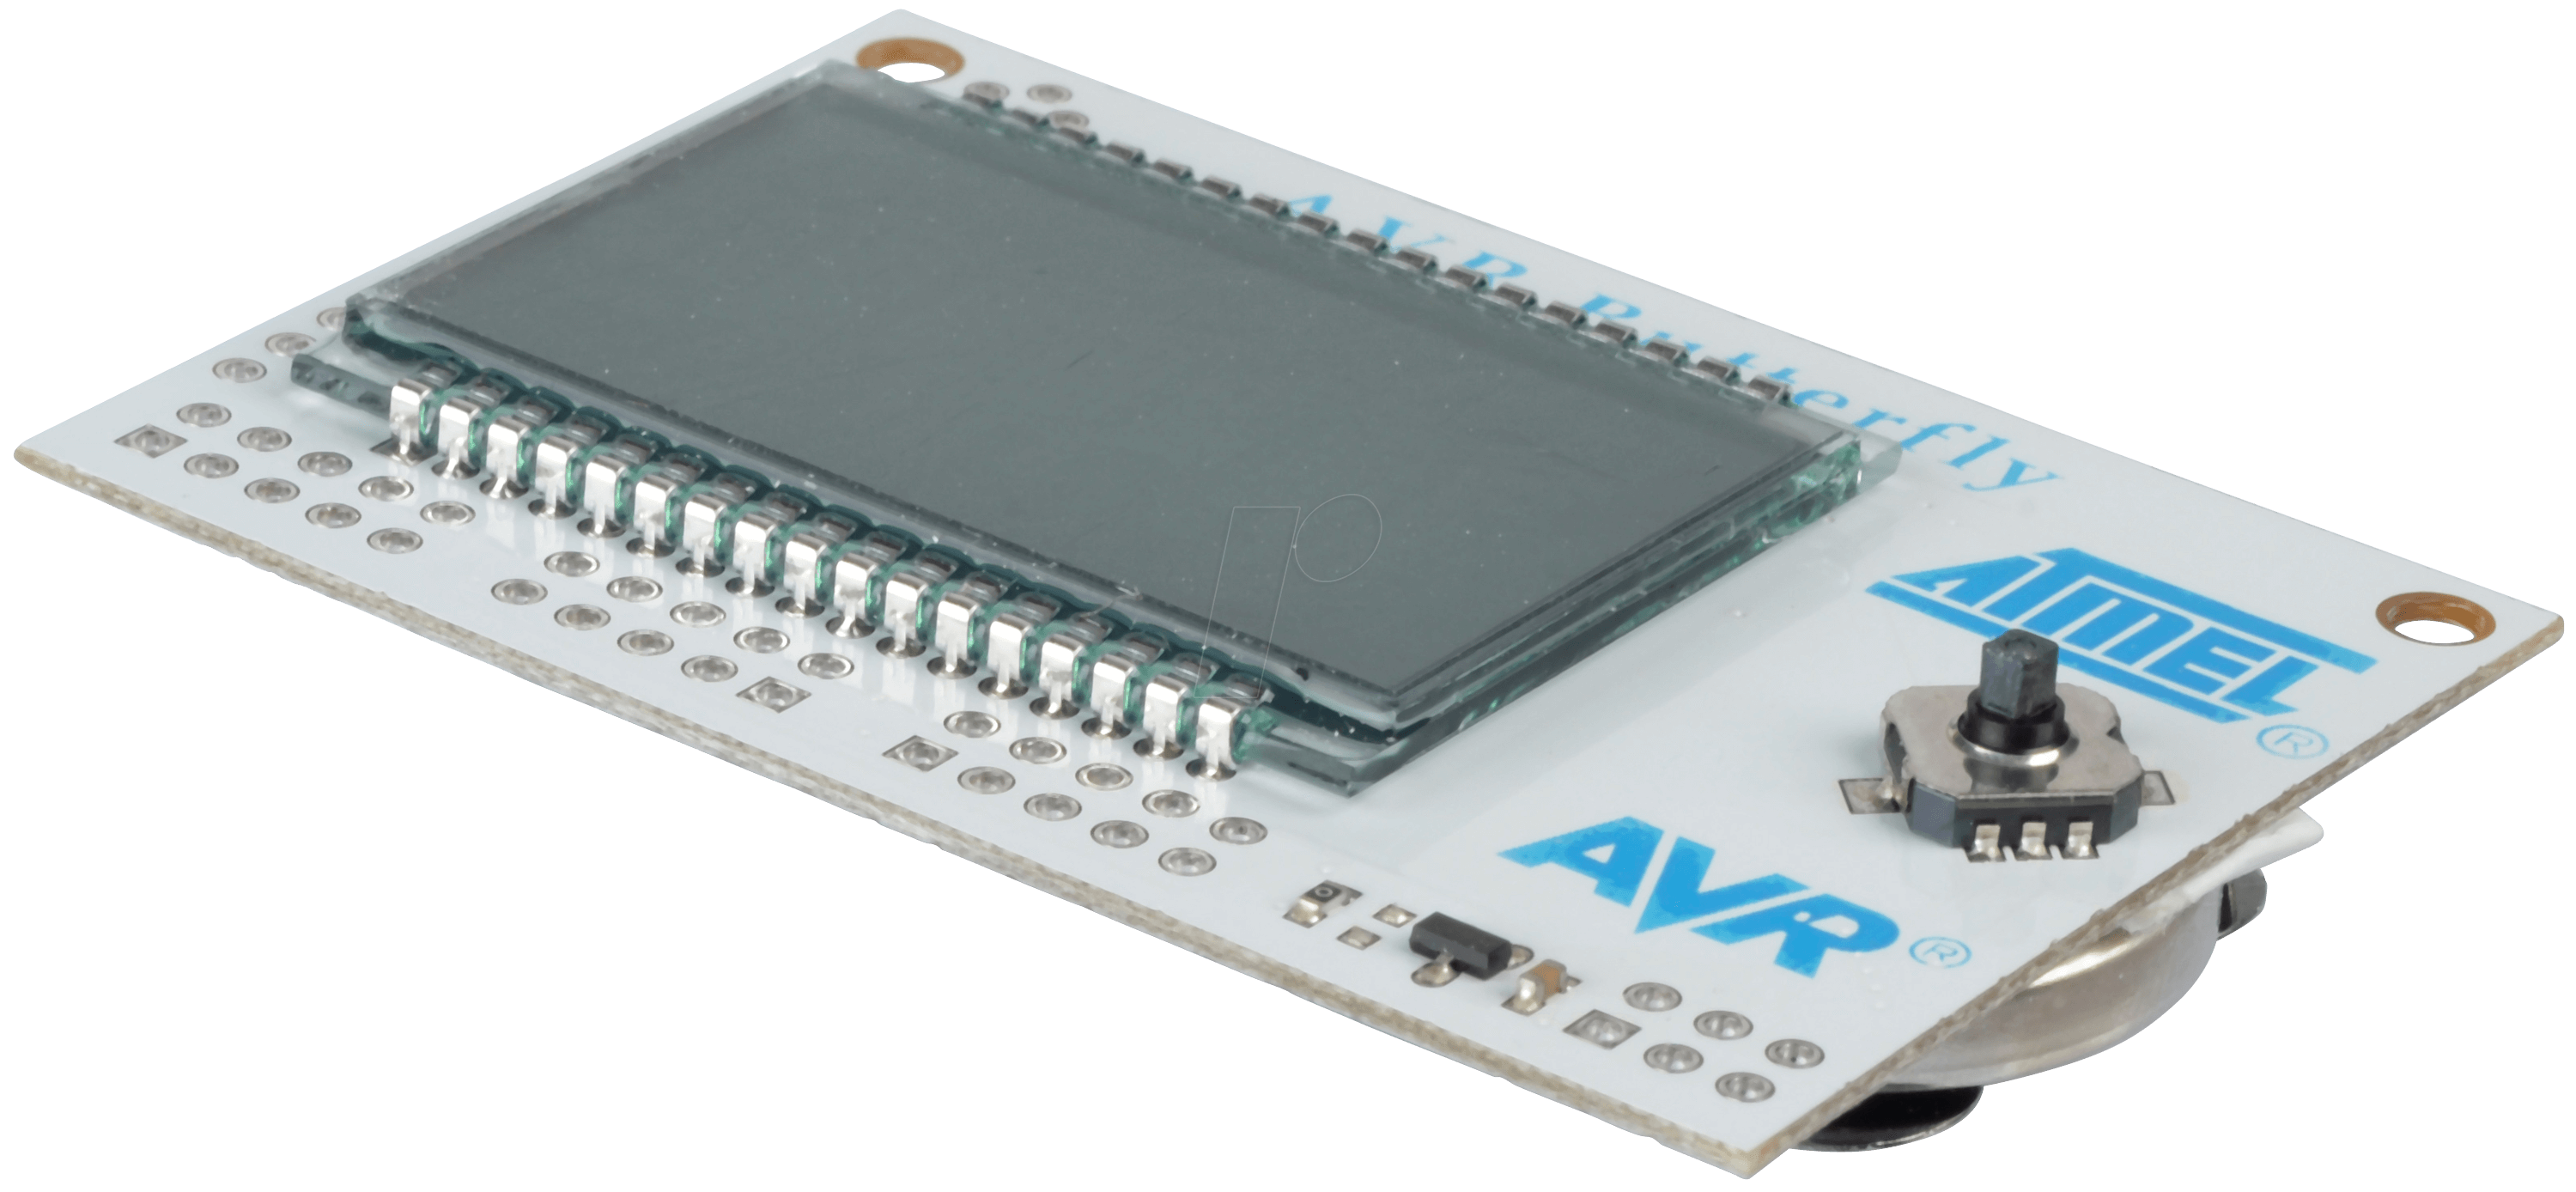 AT AVR ERFLY: Atmel AVR erfly, Demoboard with ATmega169 at ...